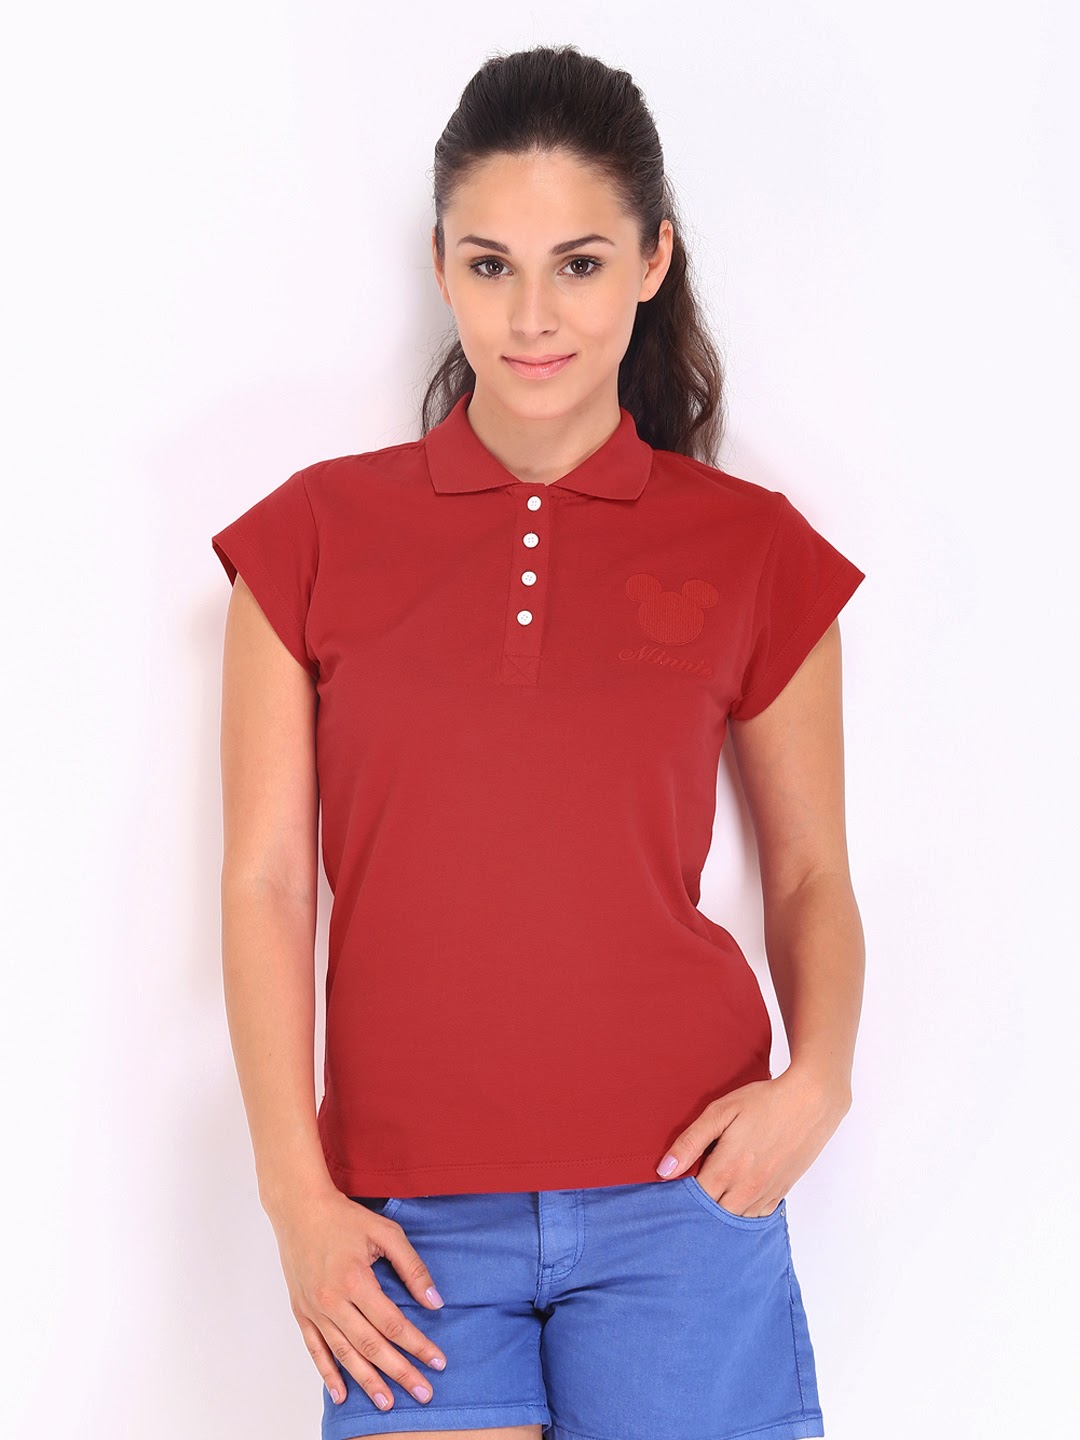 Ralph Lauren's iconic polo shirts can be one of the most versatile items in a women's wardrobe. Short sleeve polo shirts can be worn while touring a new area, on the way to the hotel from the airport with a pair of jeans, or combined with a pair of shorts over your swimsuit while walking along the beach.